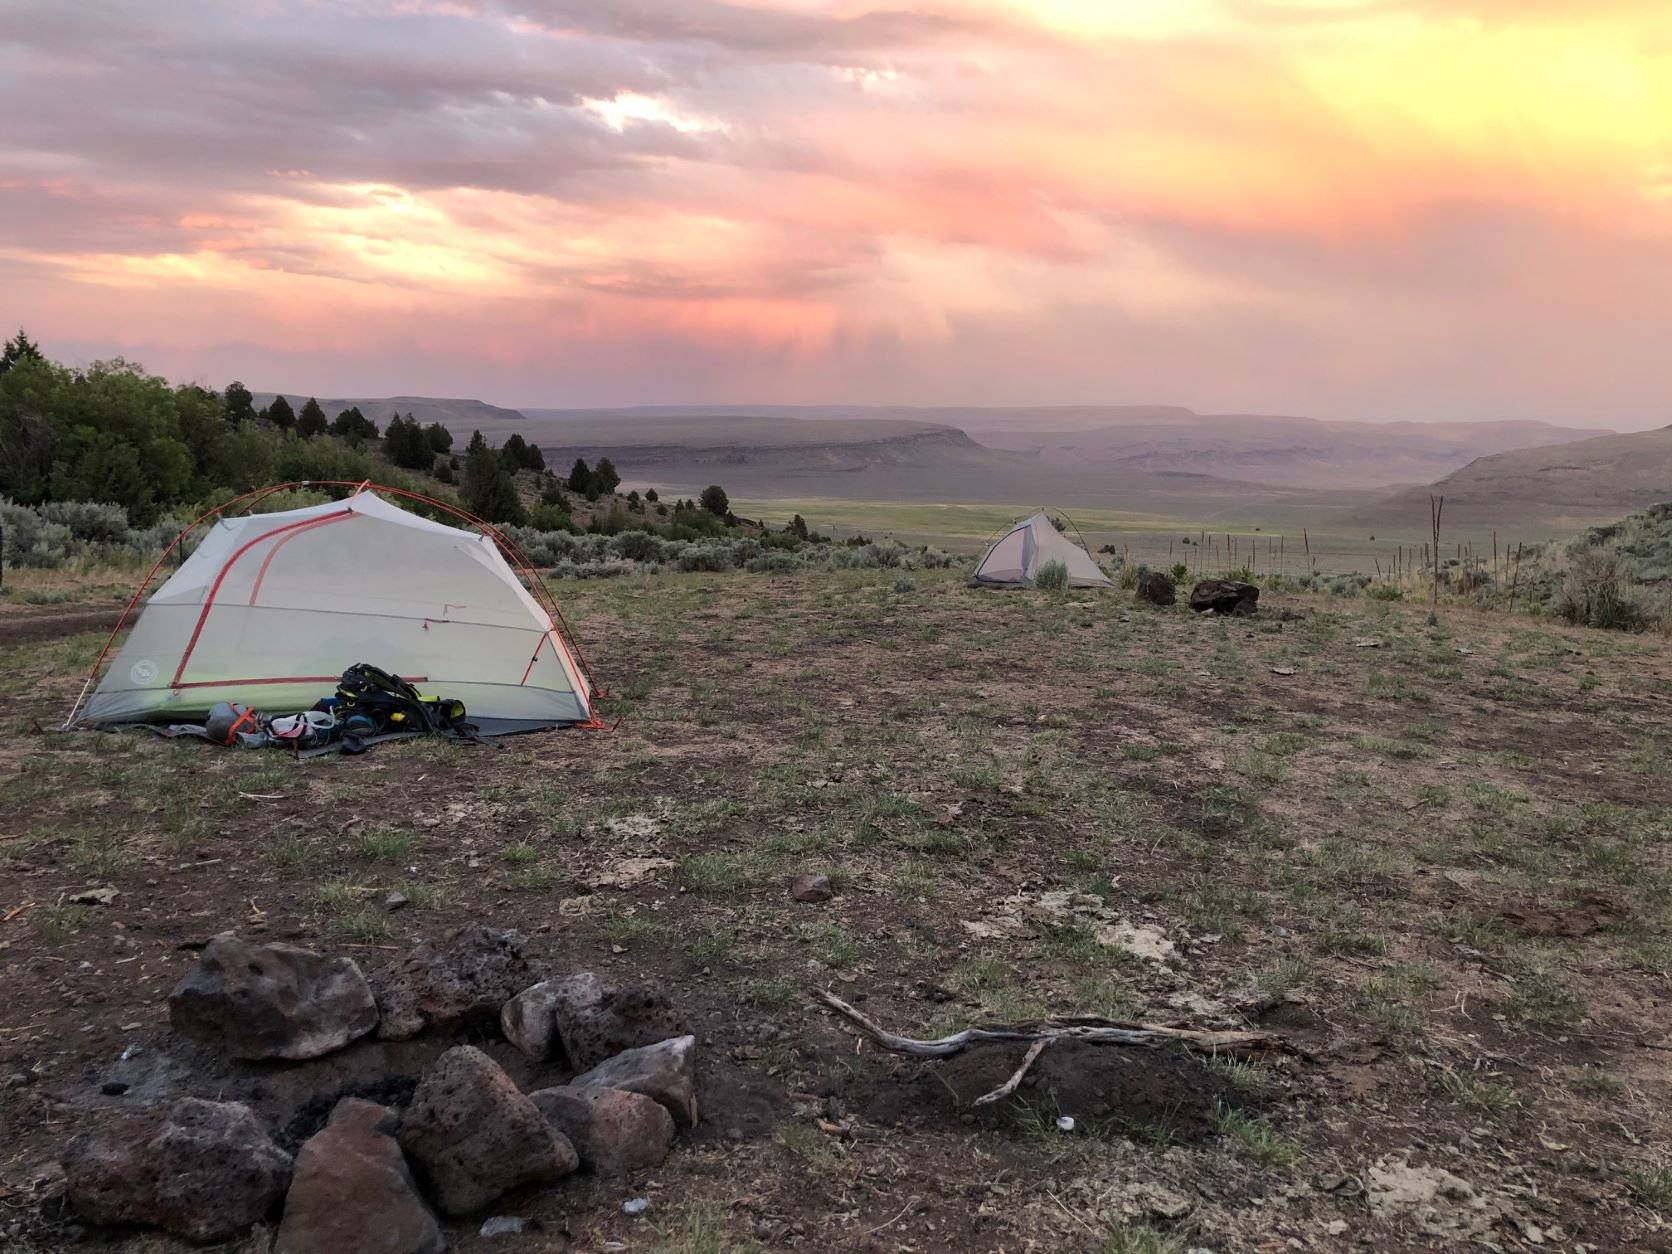 Tents in a canyon on the east of Steens Mountain, with a yellow, pink, and purple sunset in the background.